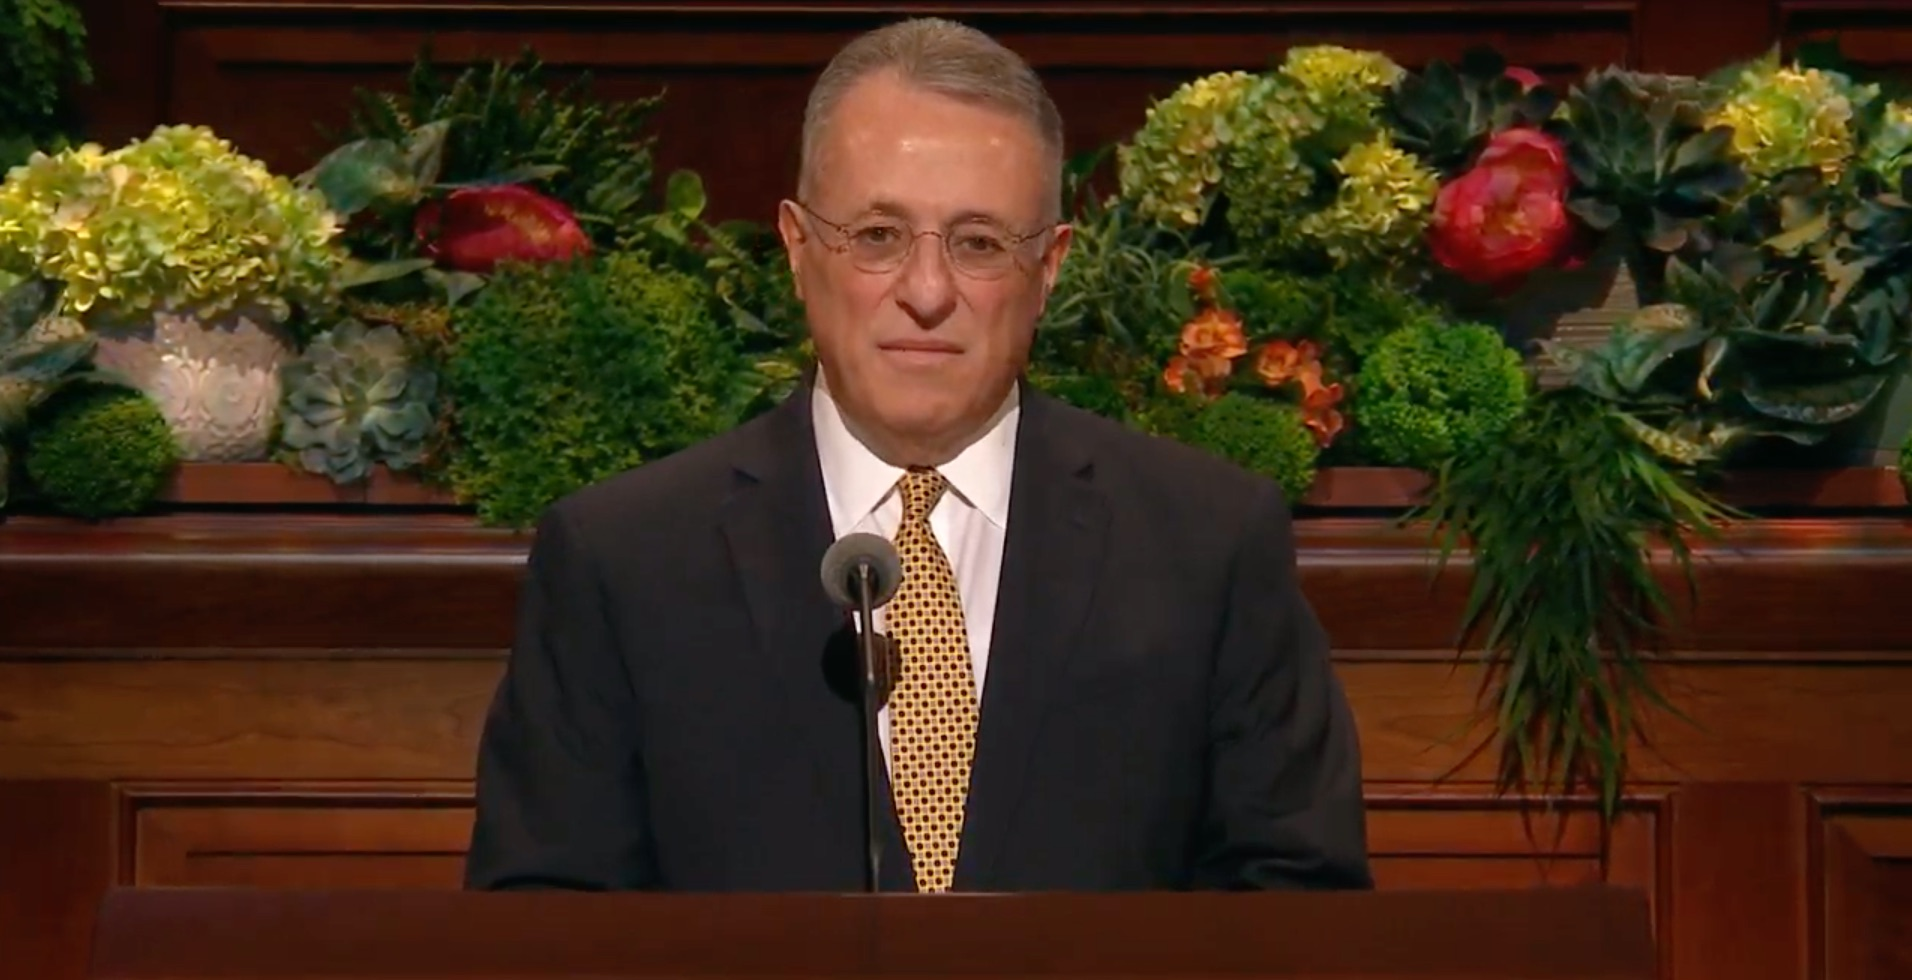 Elder Ulisses Soares of the Quorum of the Twelve Apostles gives his address during the Saturday morning session of the 189th Annual General Conference on April 6, 2019.